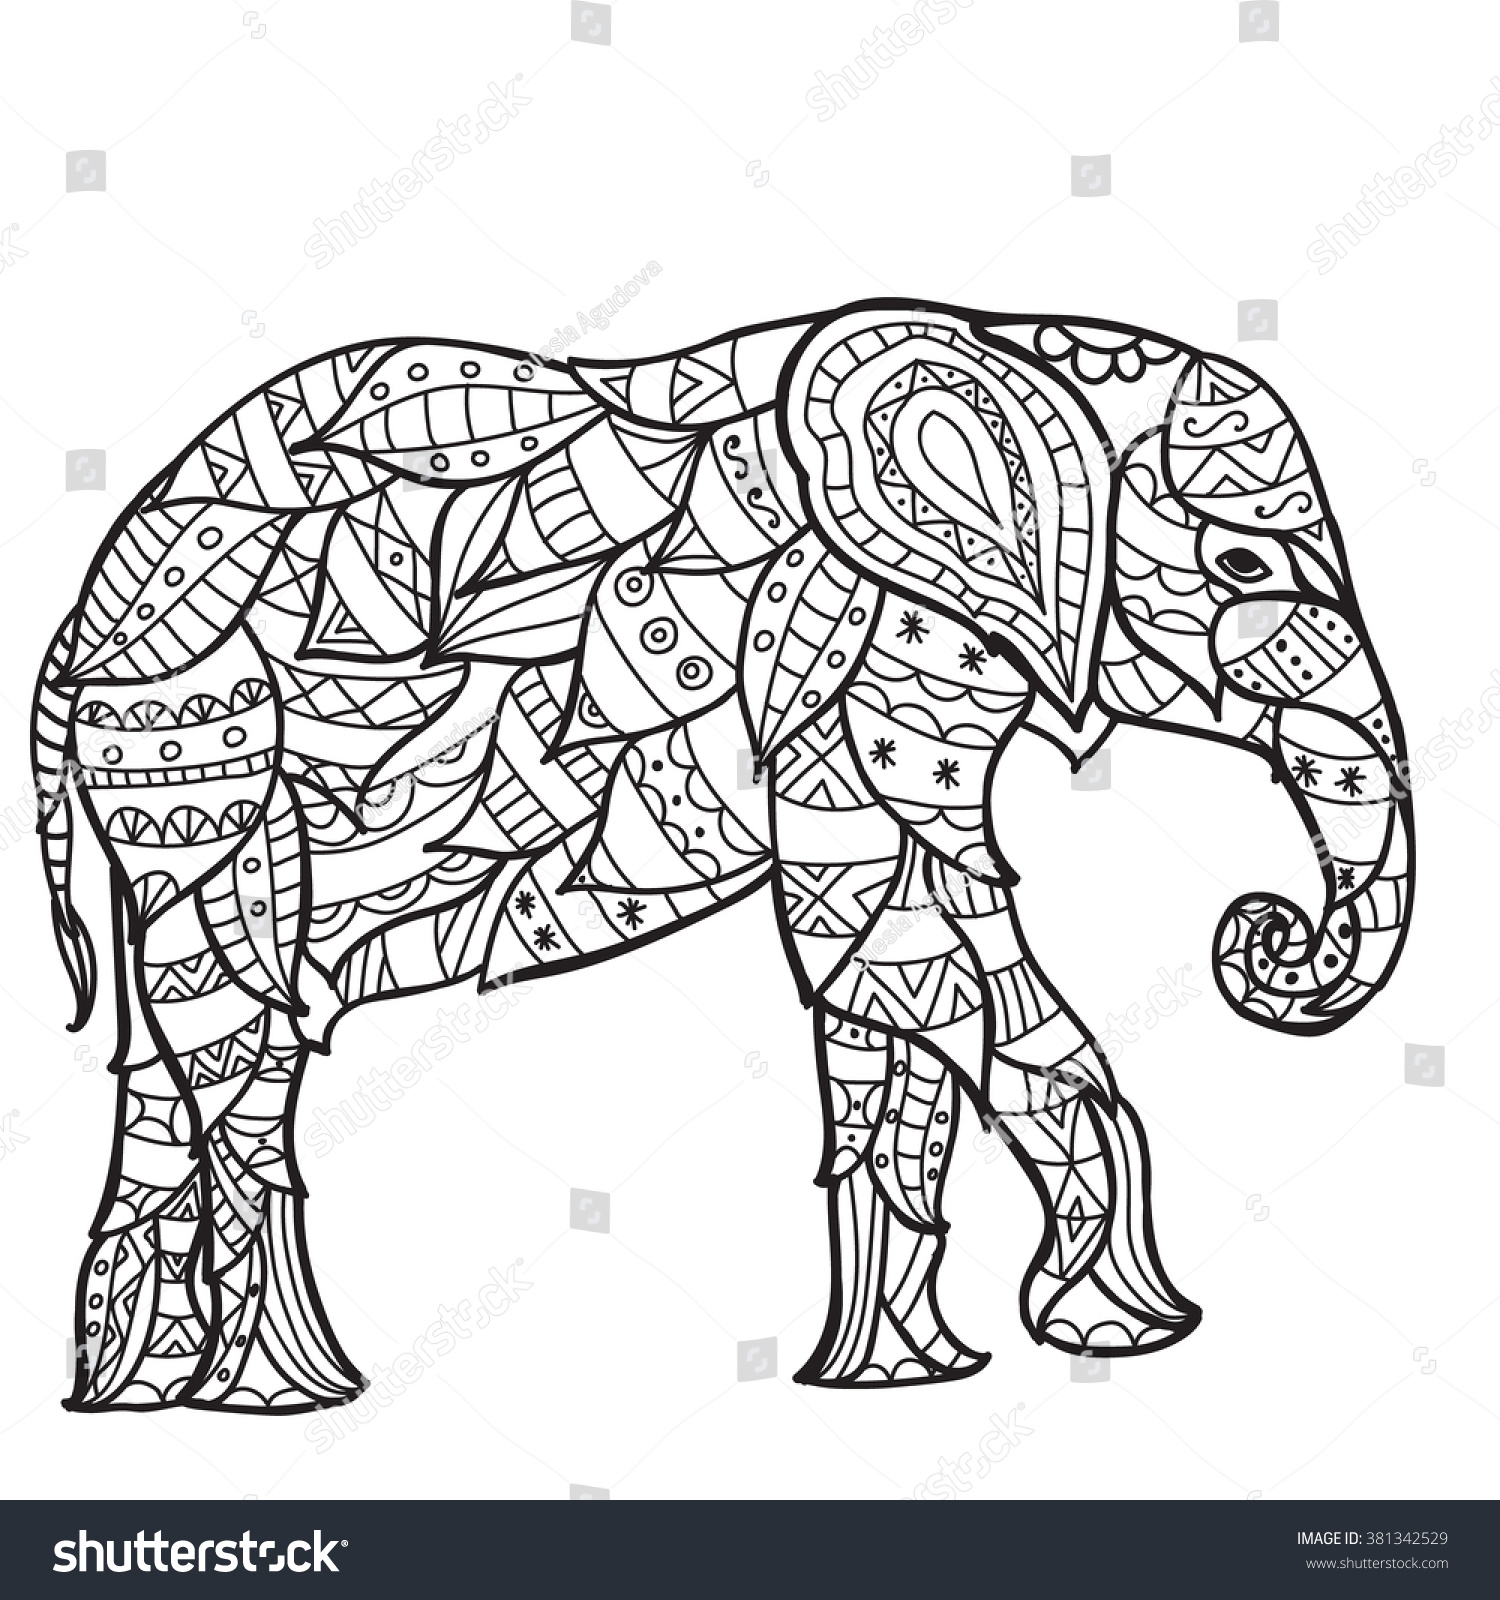 Elephant Antistress Coloring Book Adults Black Stock Vector HD ...